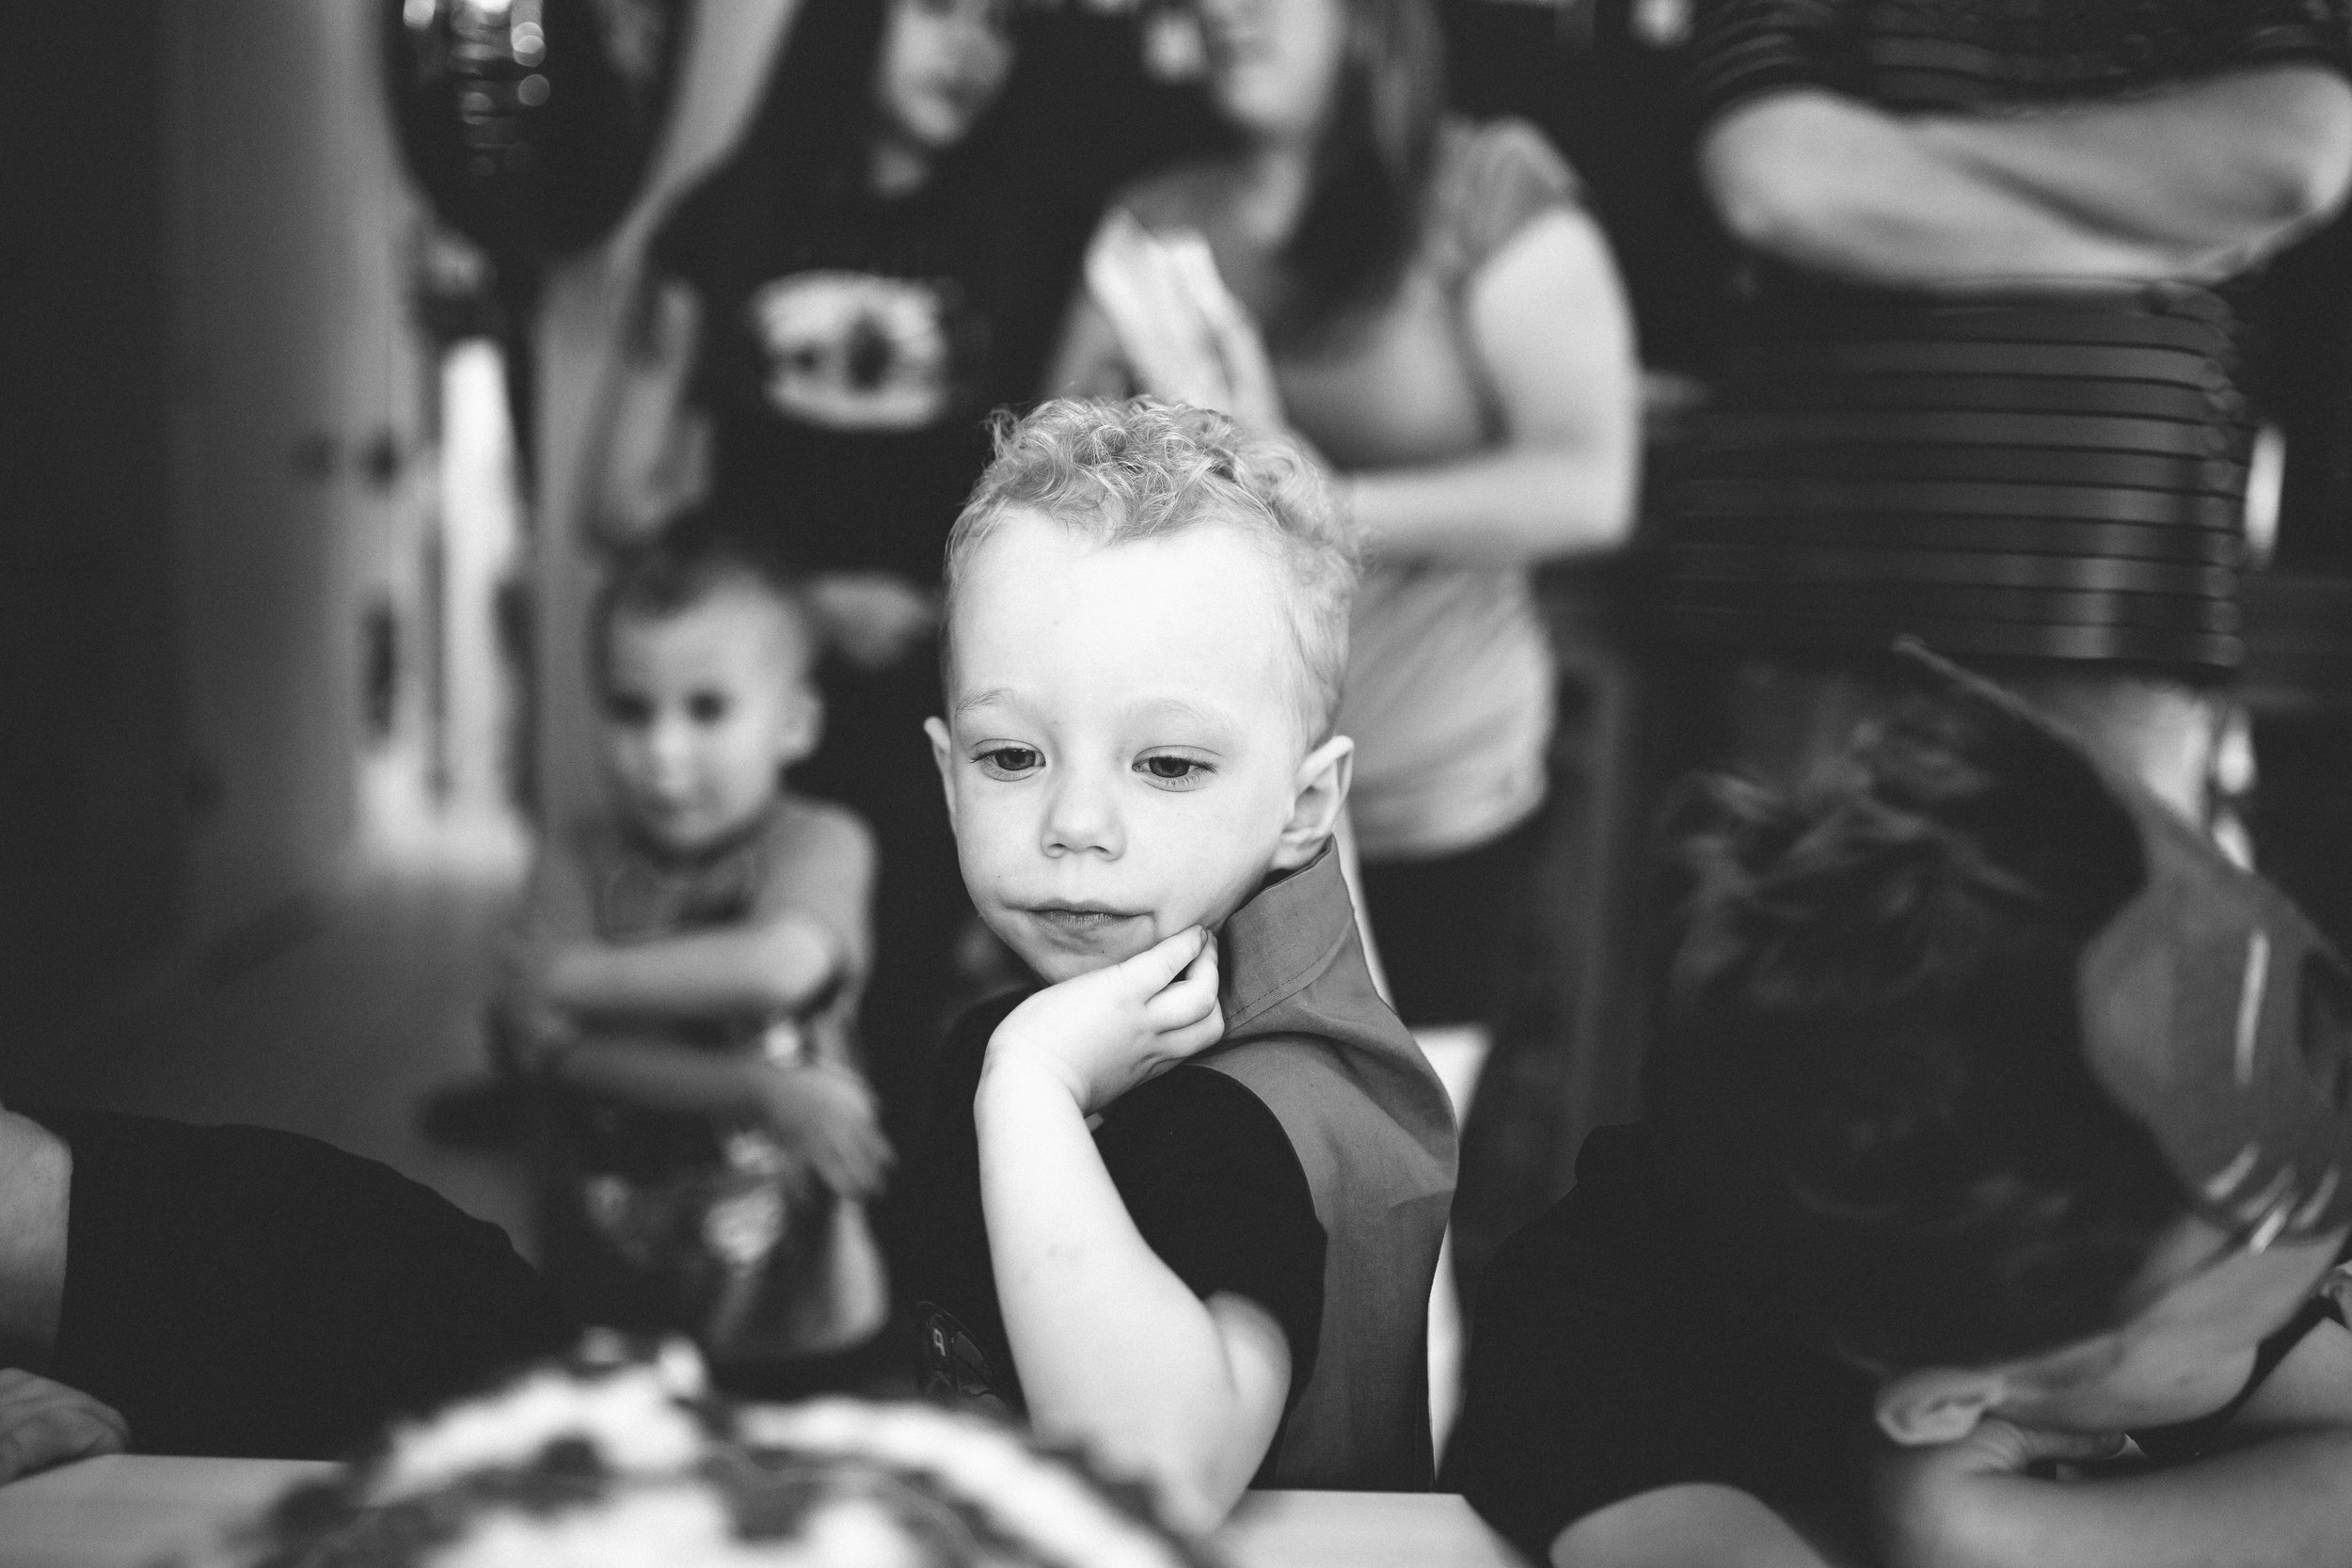 birthday photographer, pinellas county fl